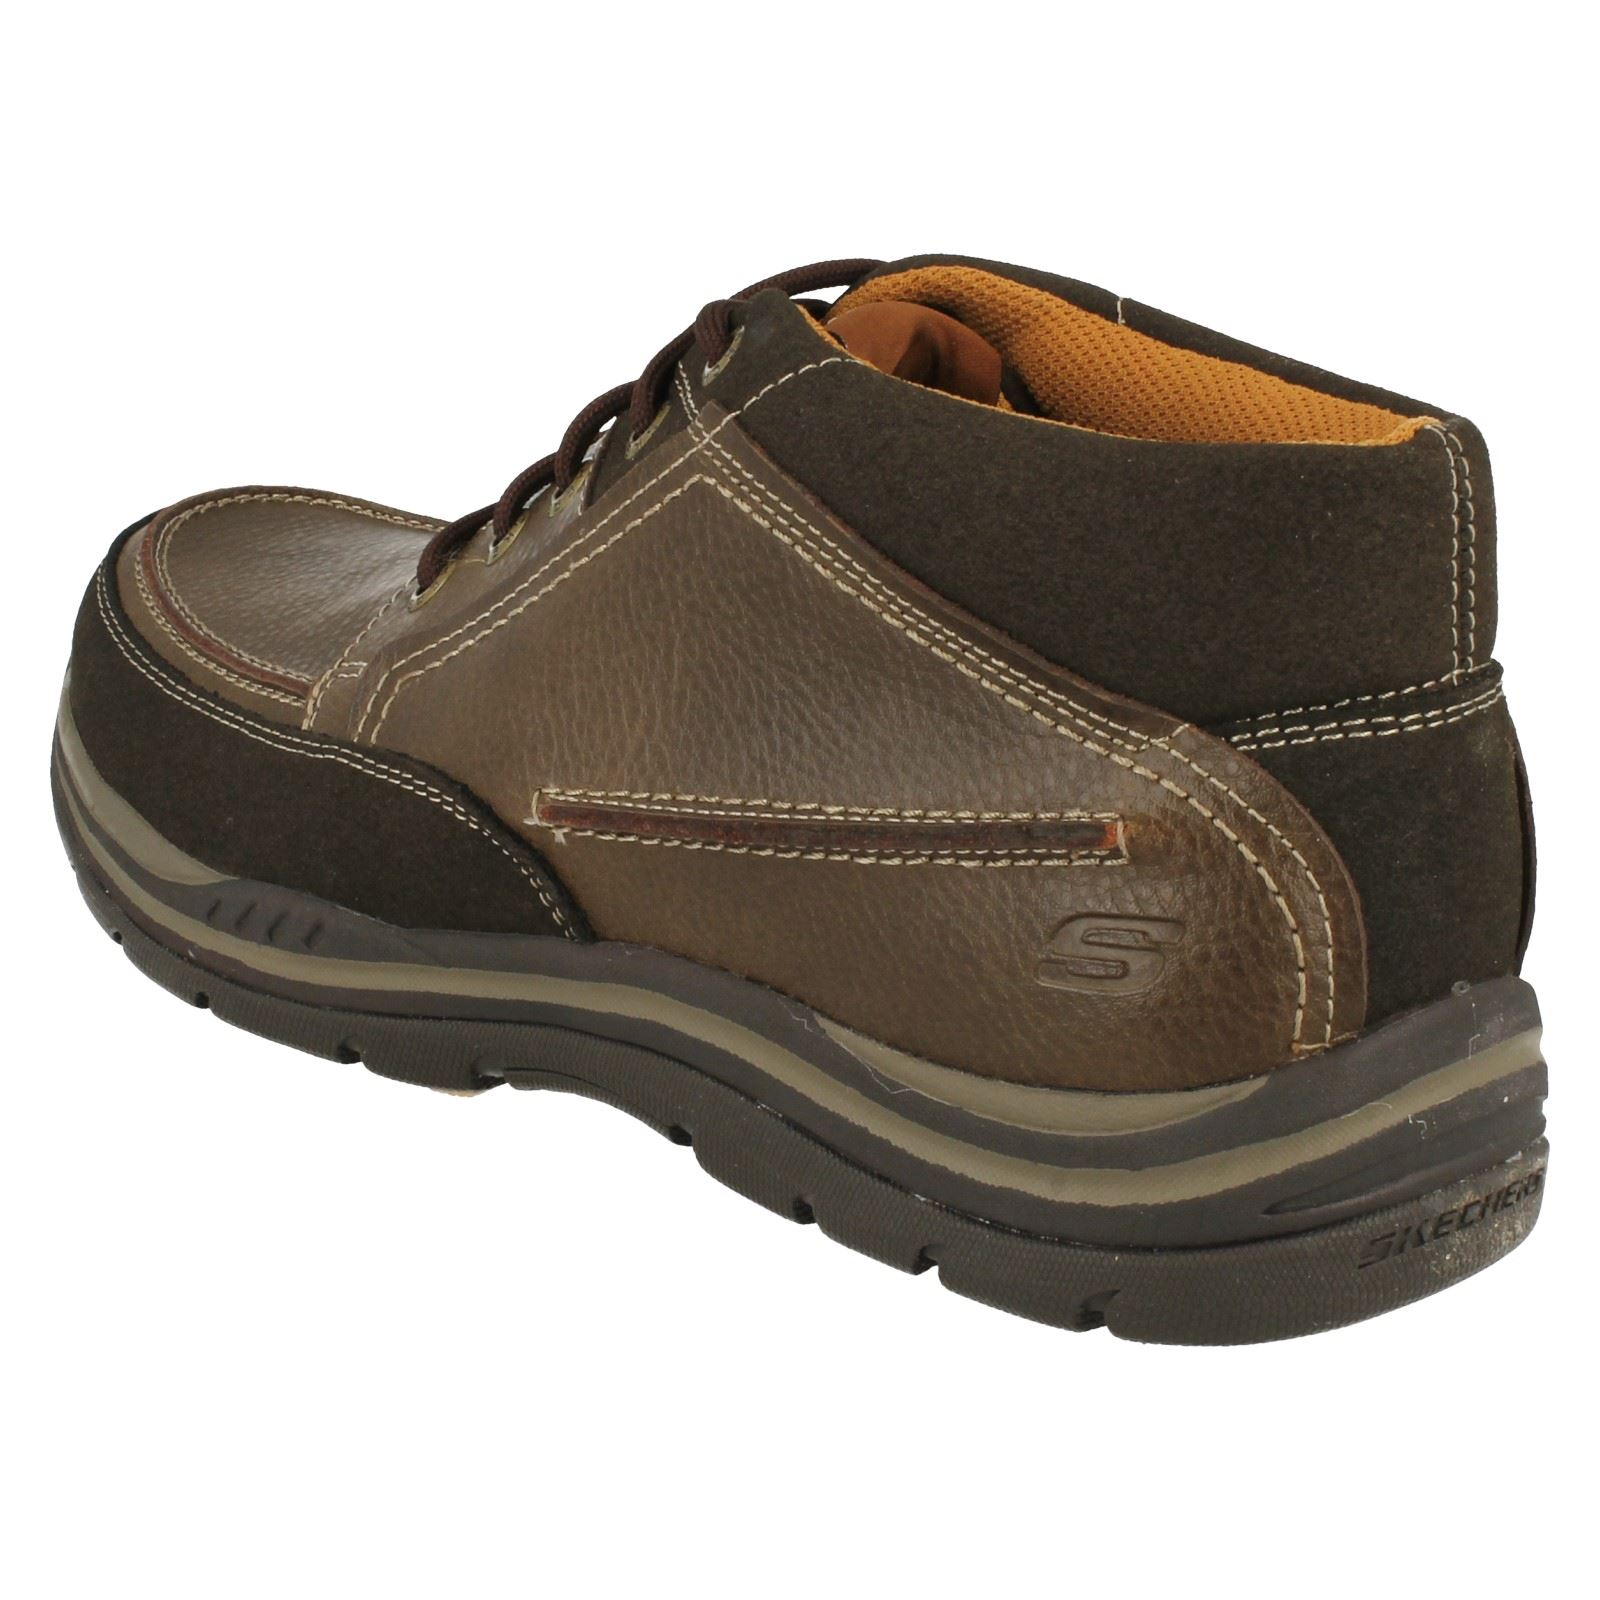 Mens Skechers Relaxed Fit Memory Foam